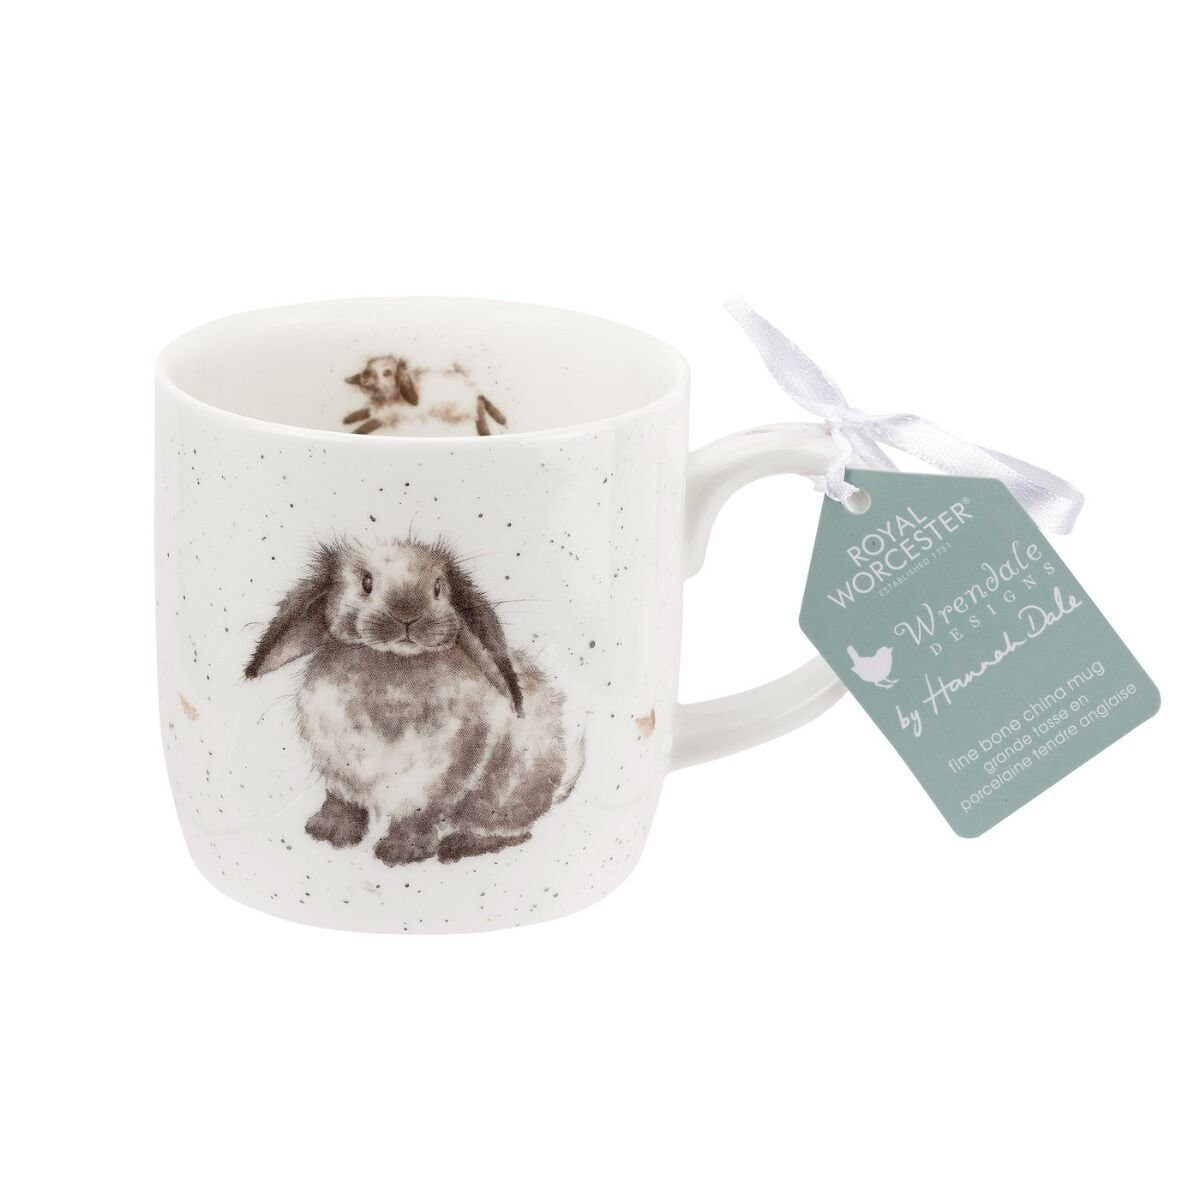 Royal Worcester Wrendale Designs Rosie Rabbit Fine Bone China Mug);